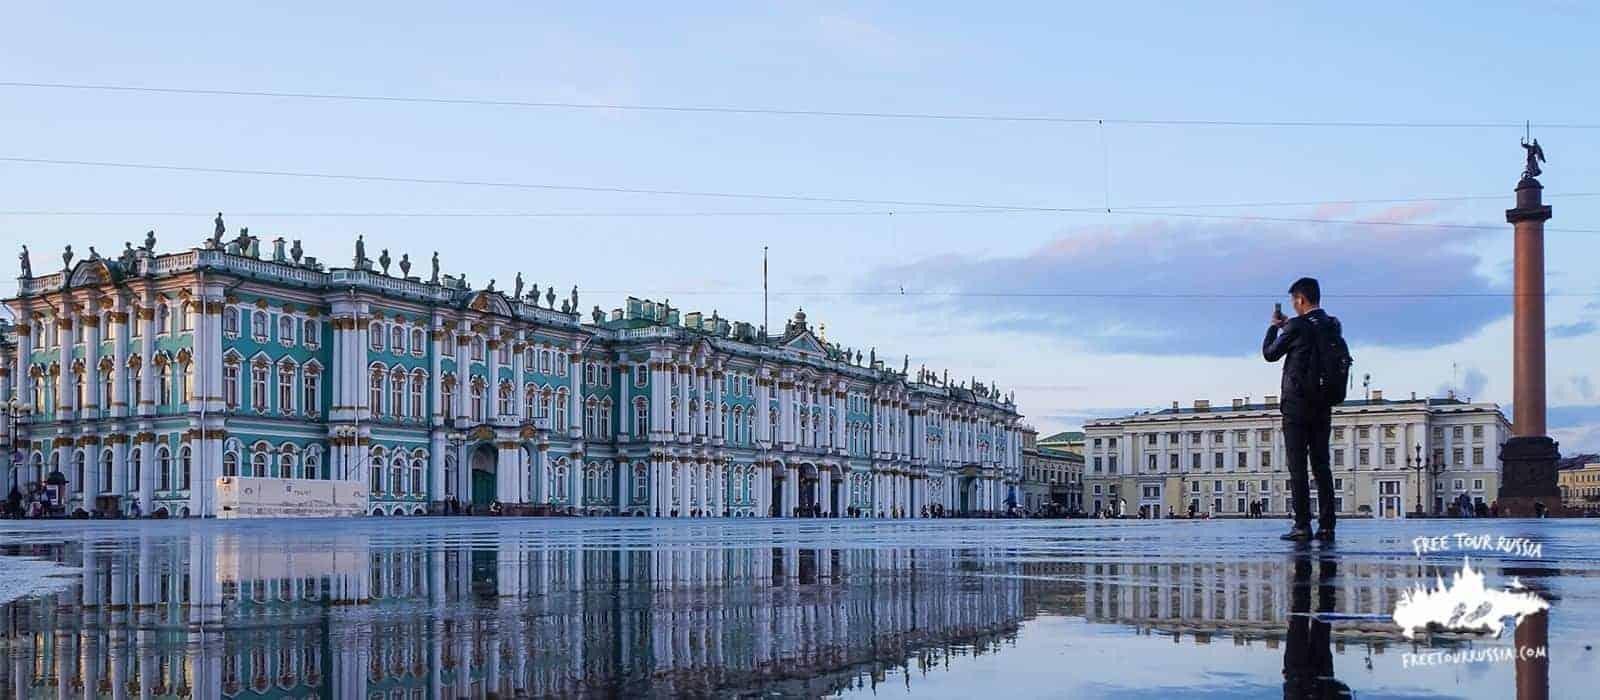 Full day tour for cruise passengers in St. Petersburg